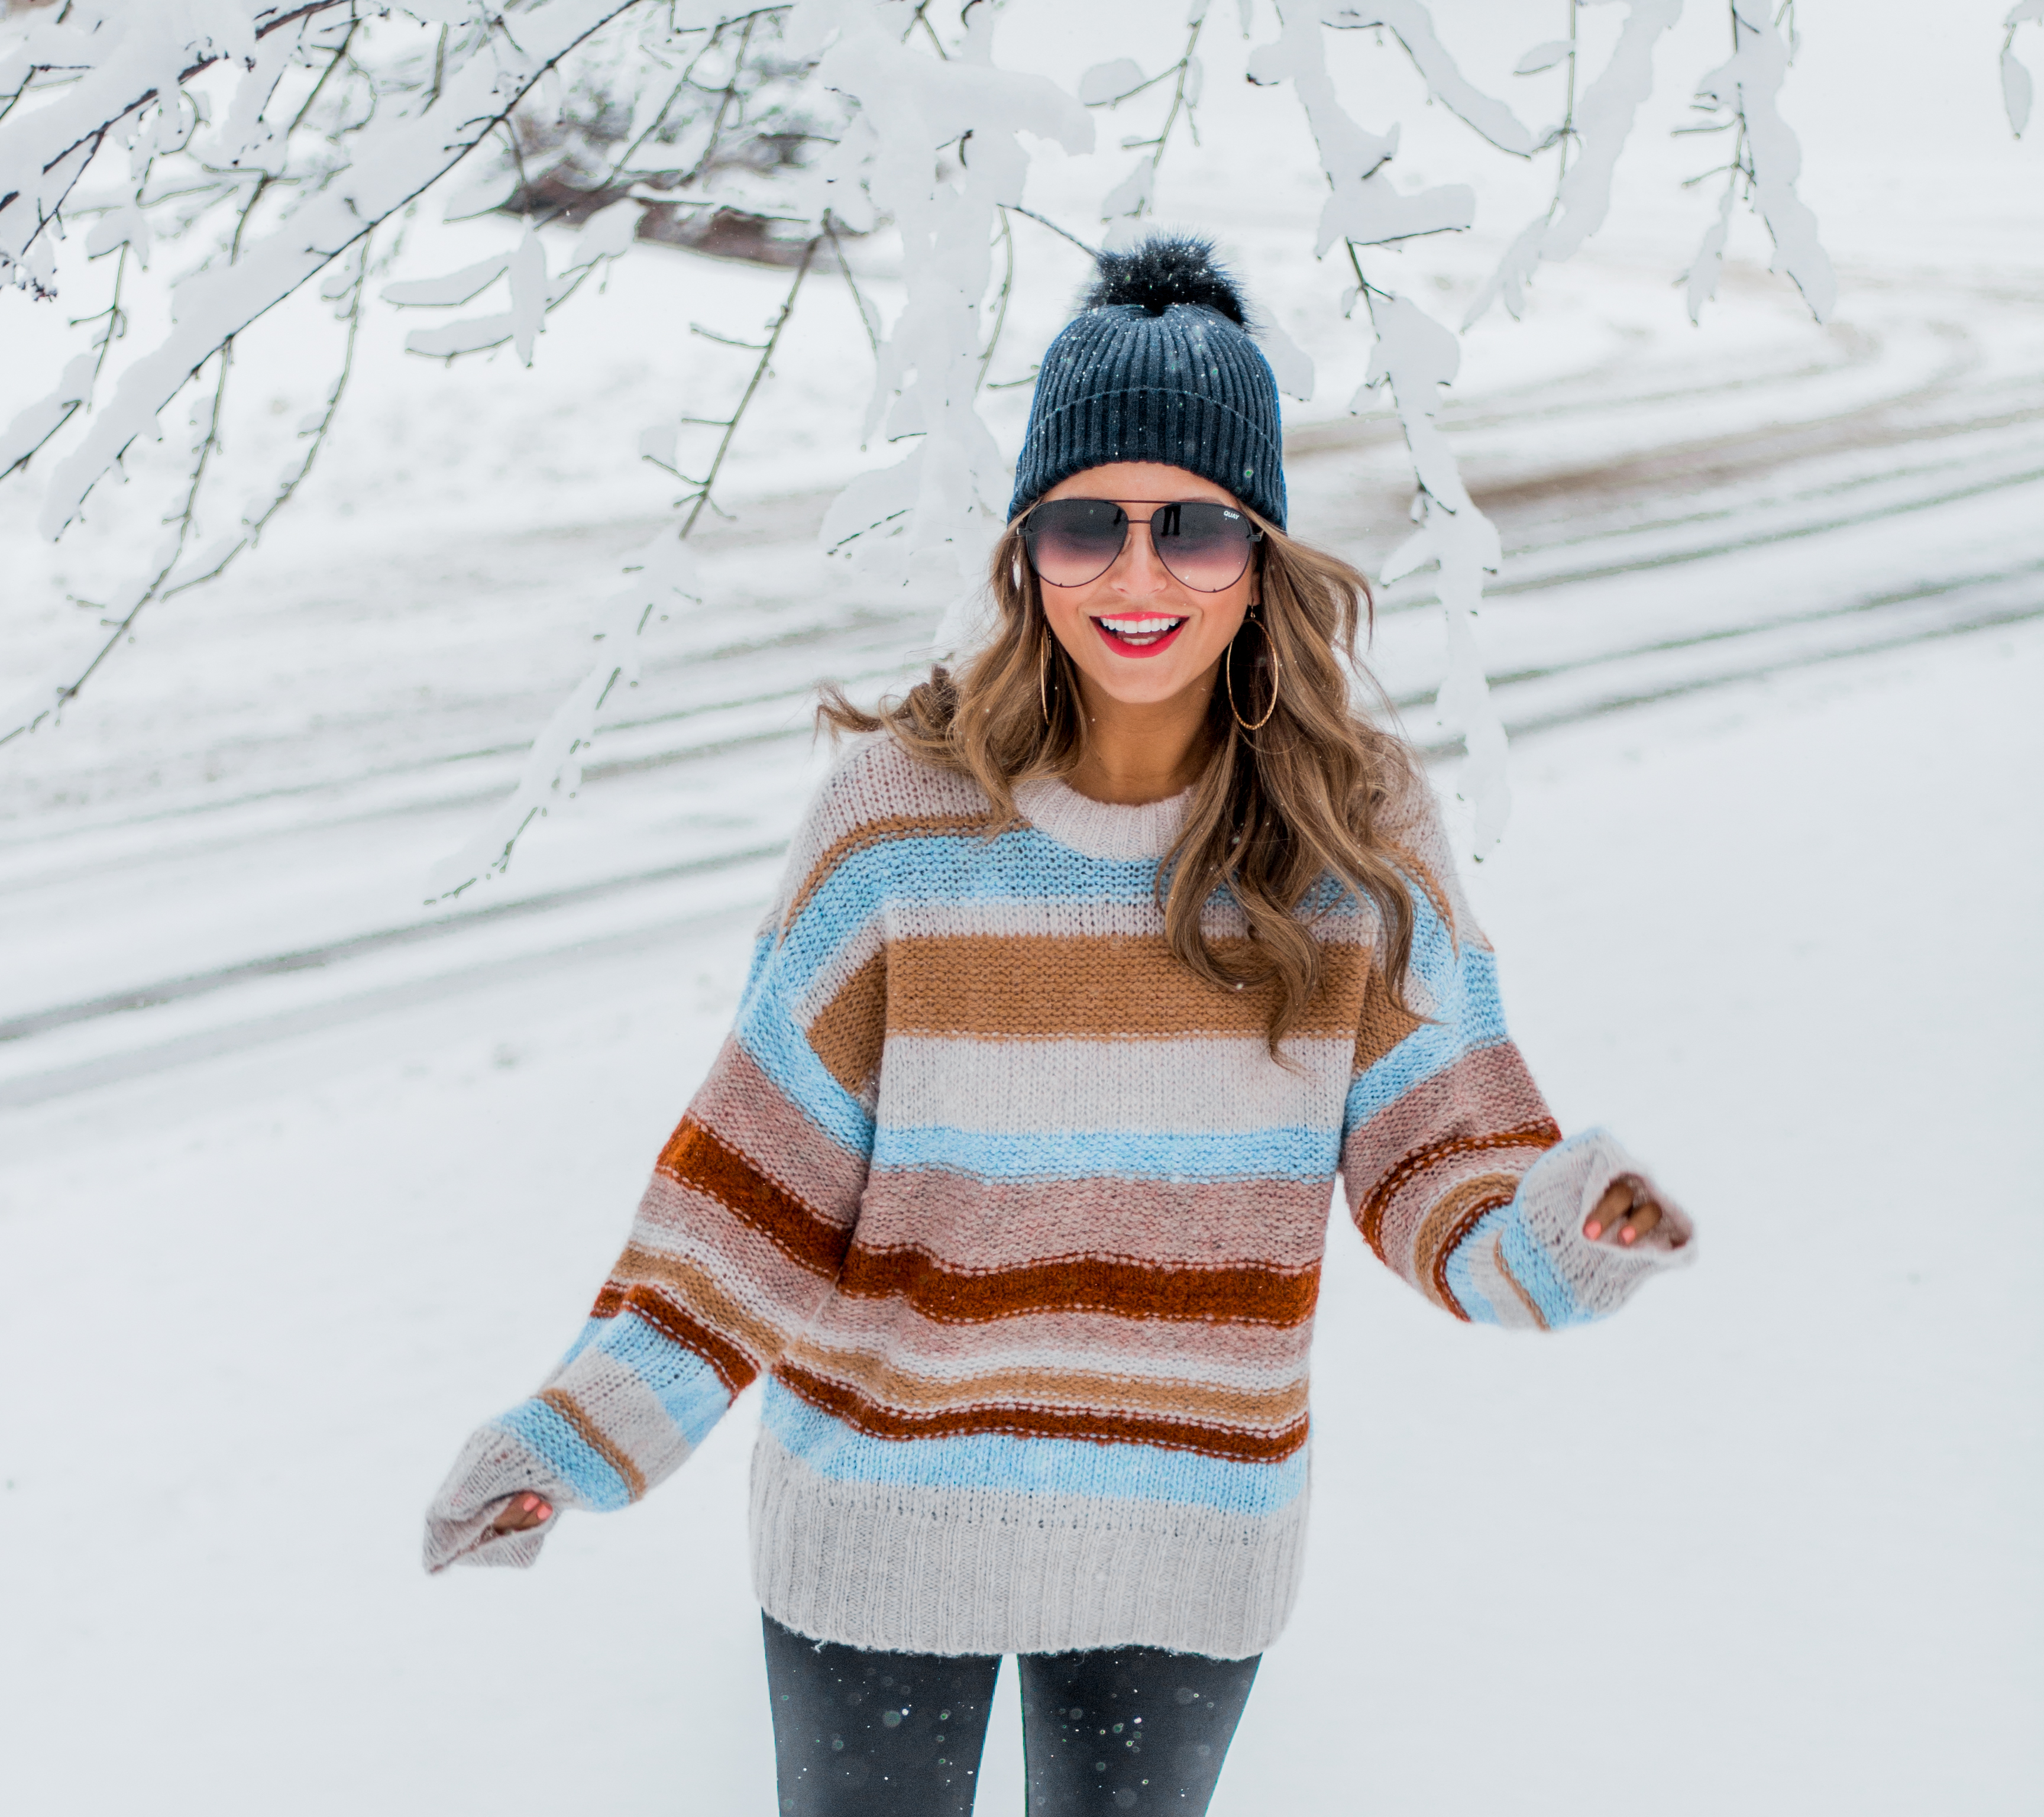 Women's Fashion - American Eagle Sweater - Hunter Boots - Beanie - Snow Day - OOTD - Fashion Blogger - Winter Fashion - 3